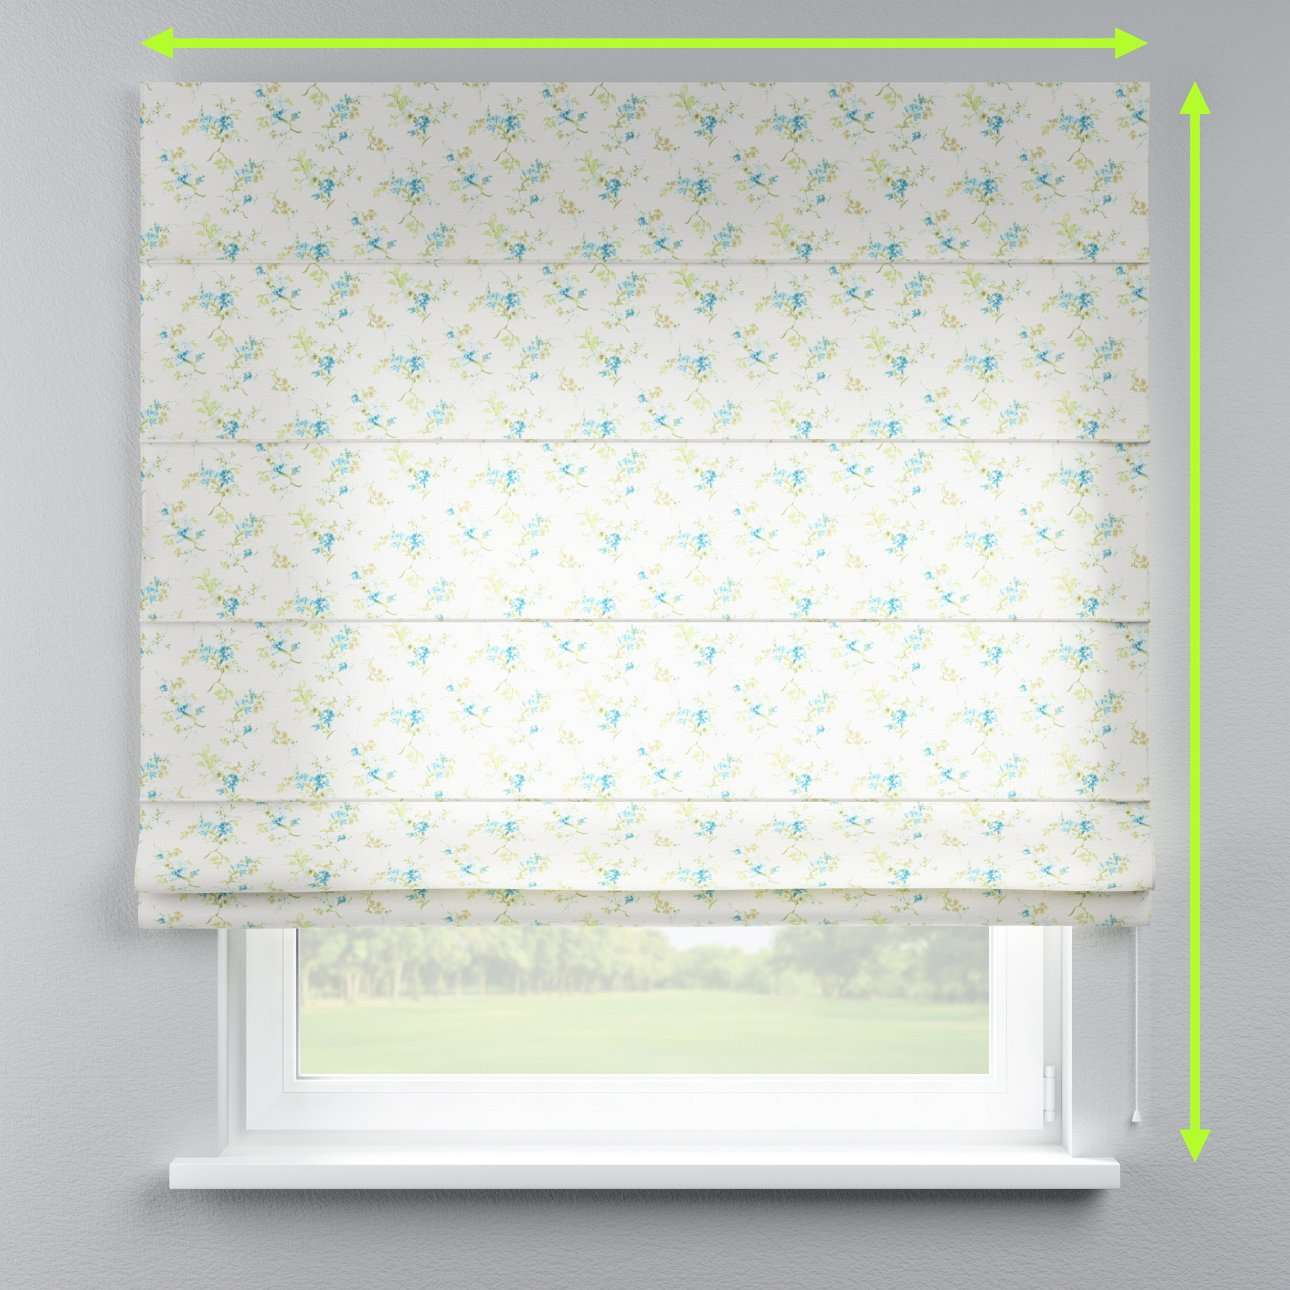 Capri roman blind in collection Mirella, fabric: 141-16